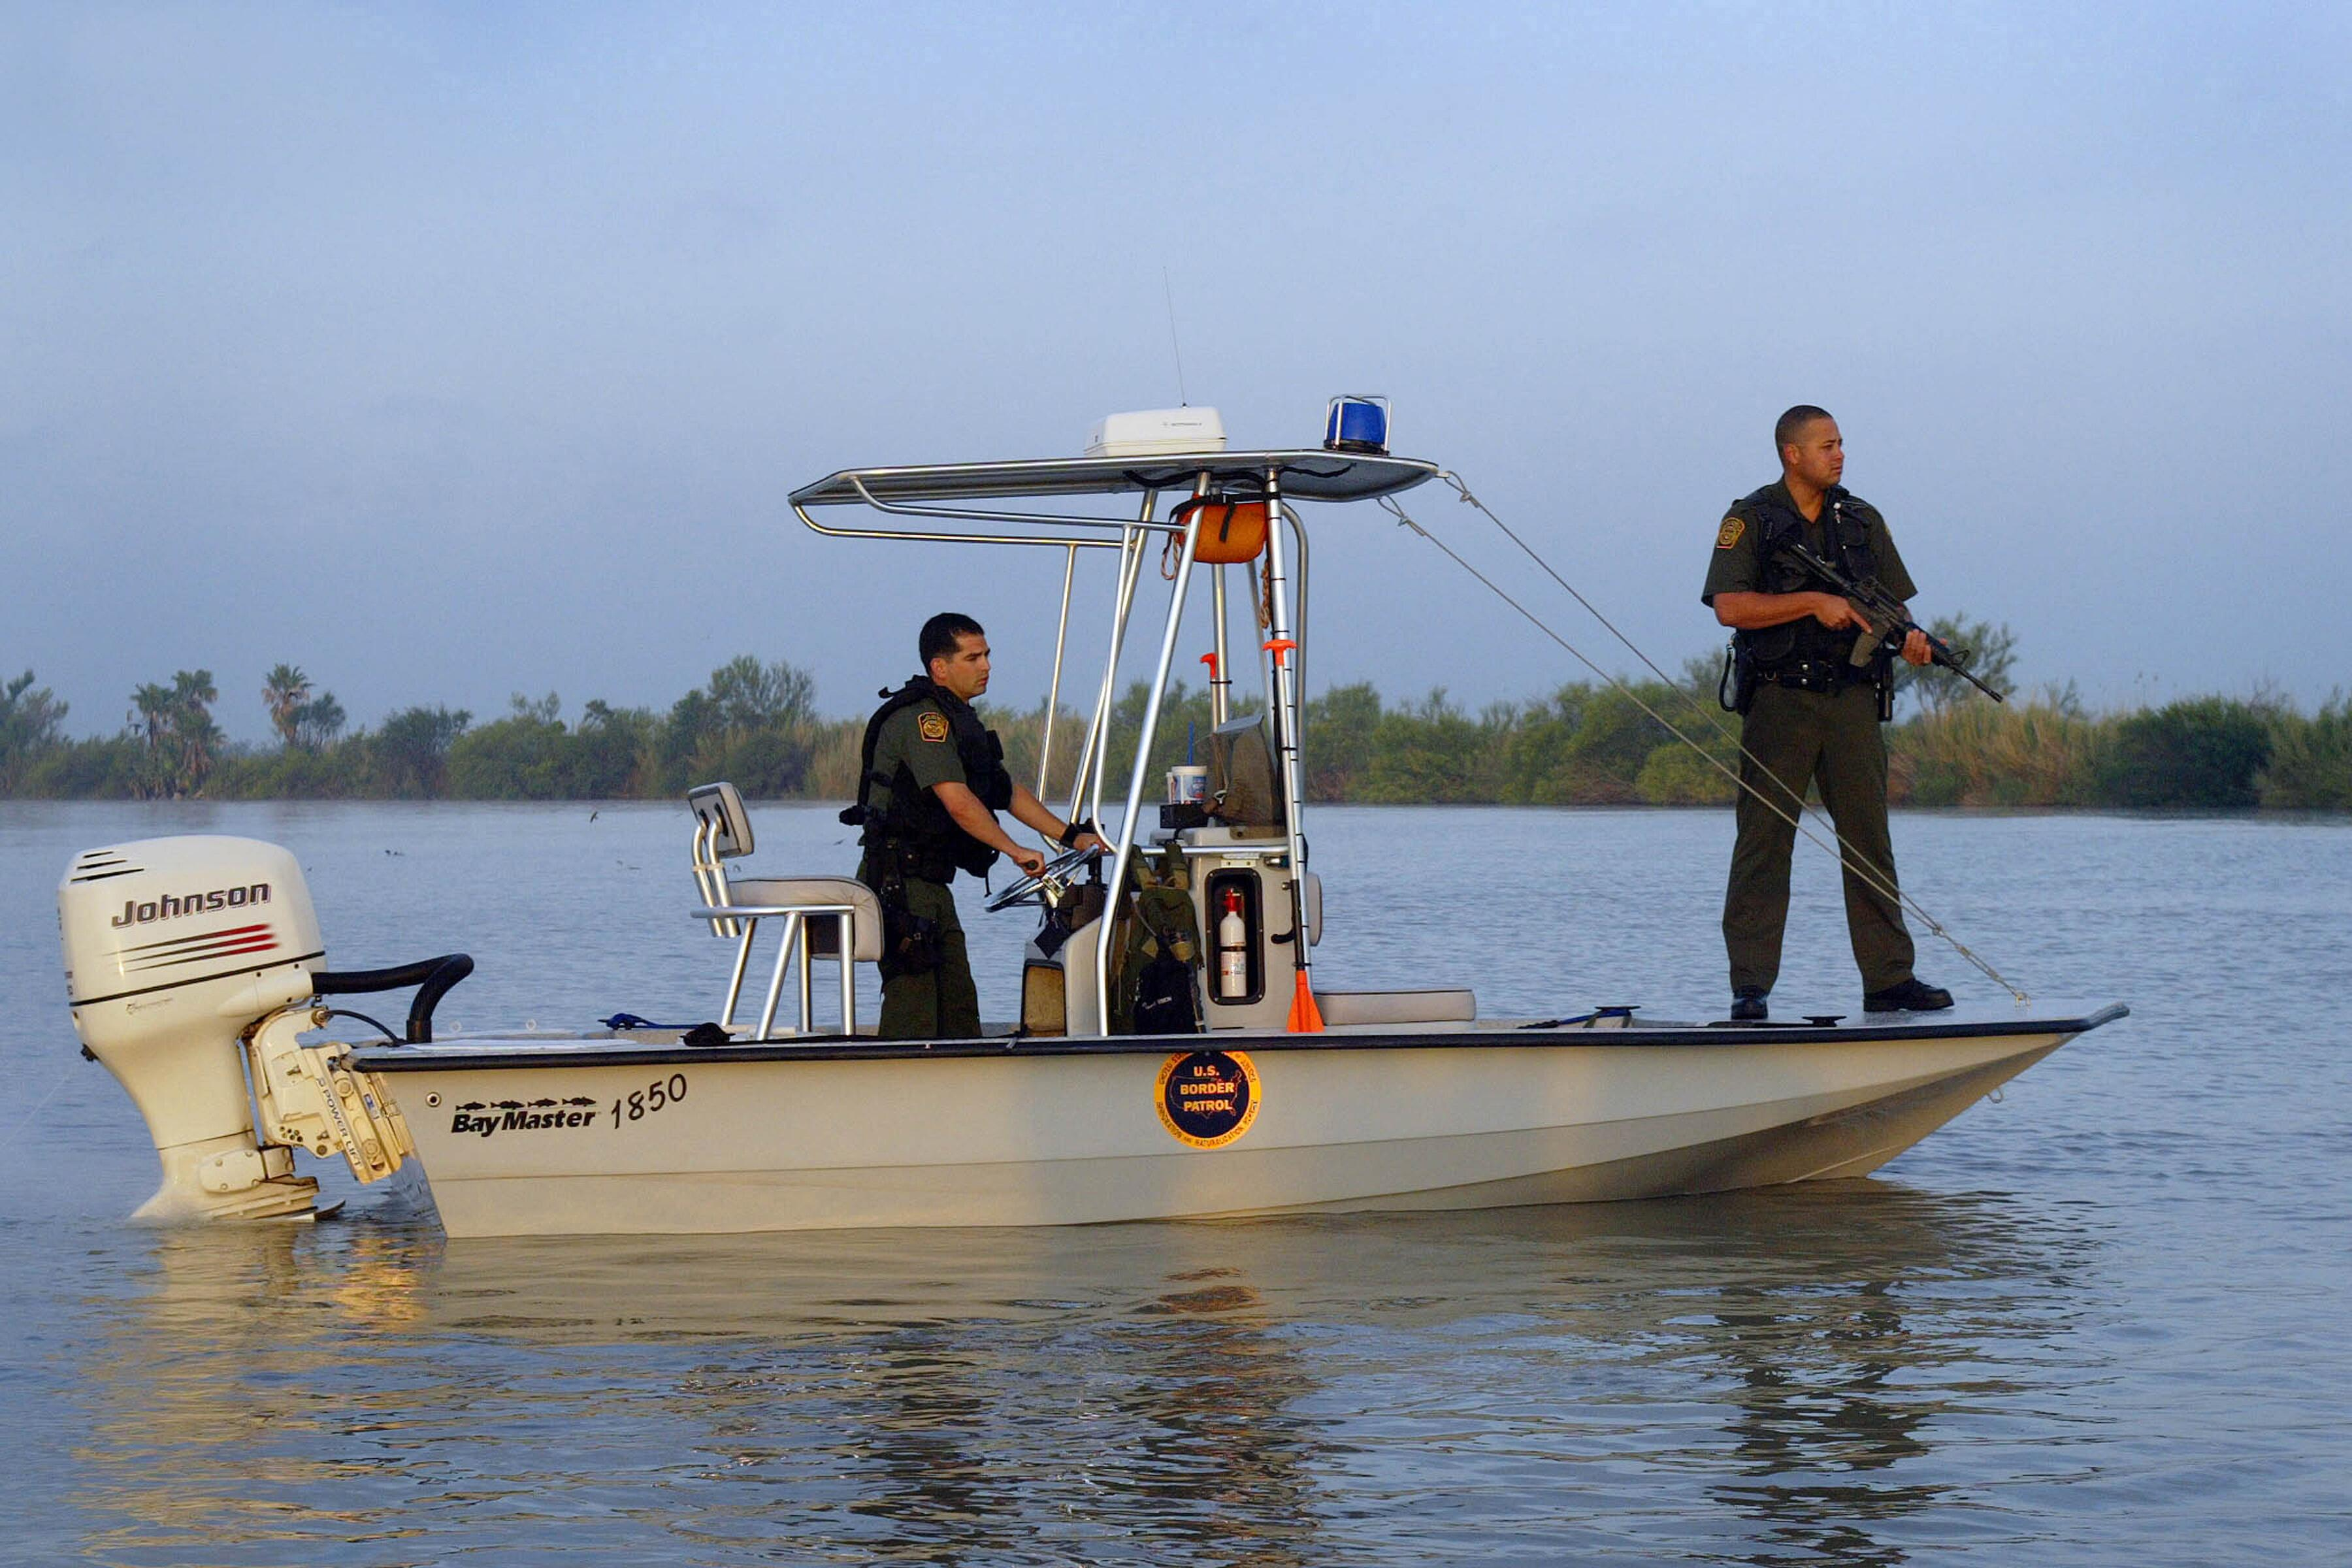 U.S. Border Patrol Marine units patrol the waterways of our Nation's borders.